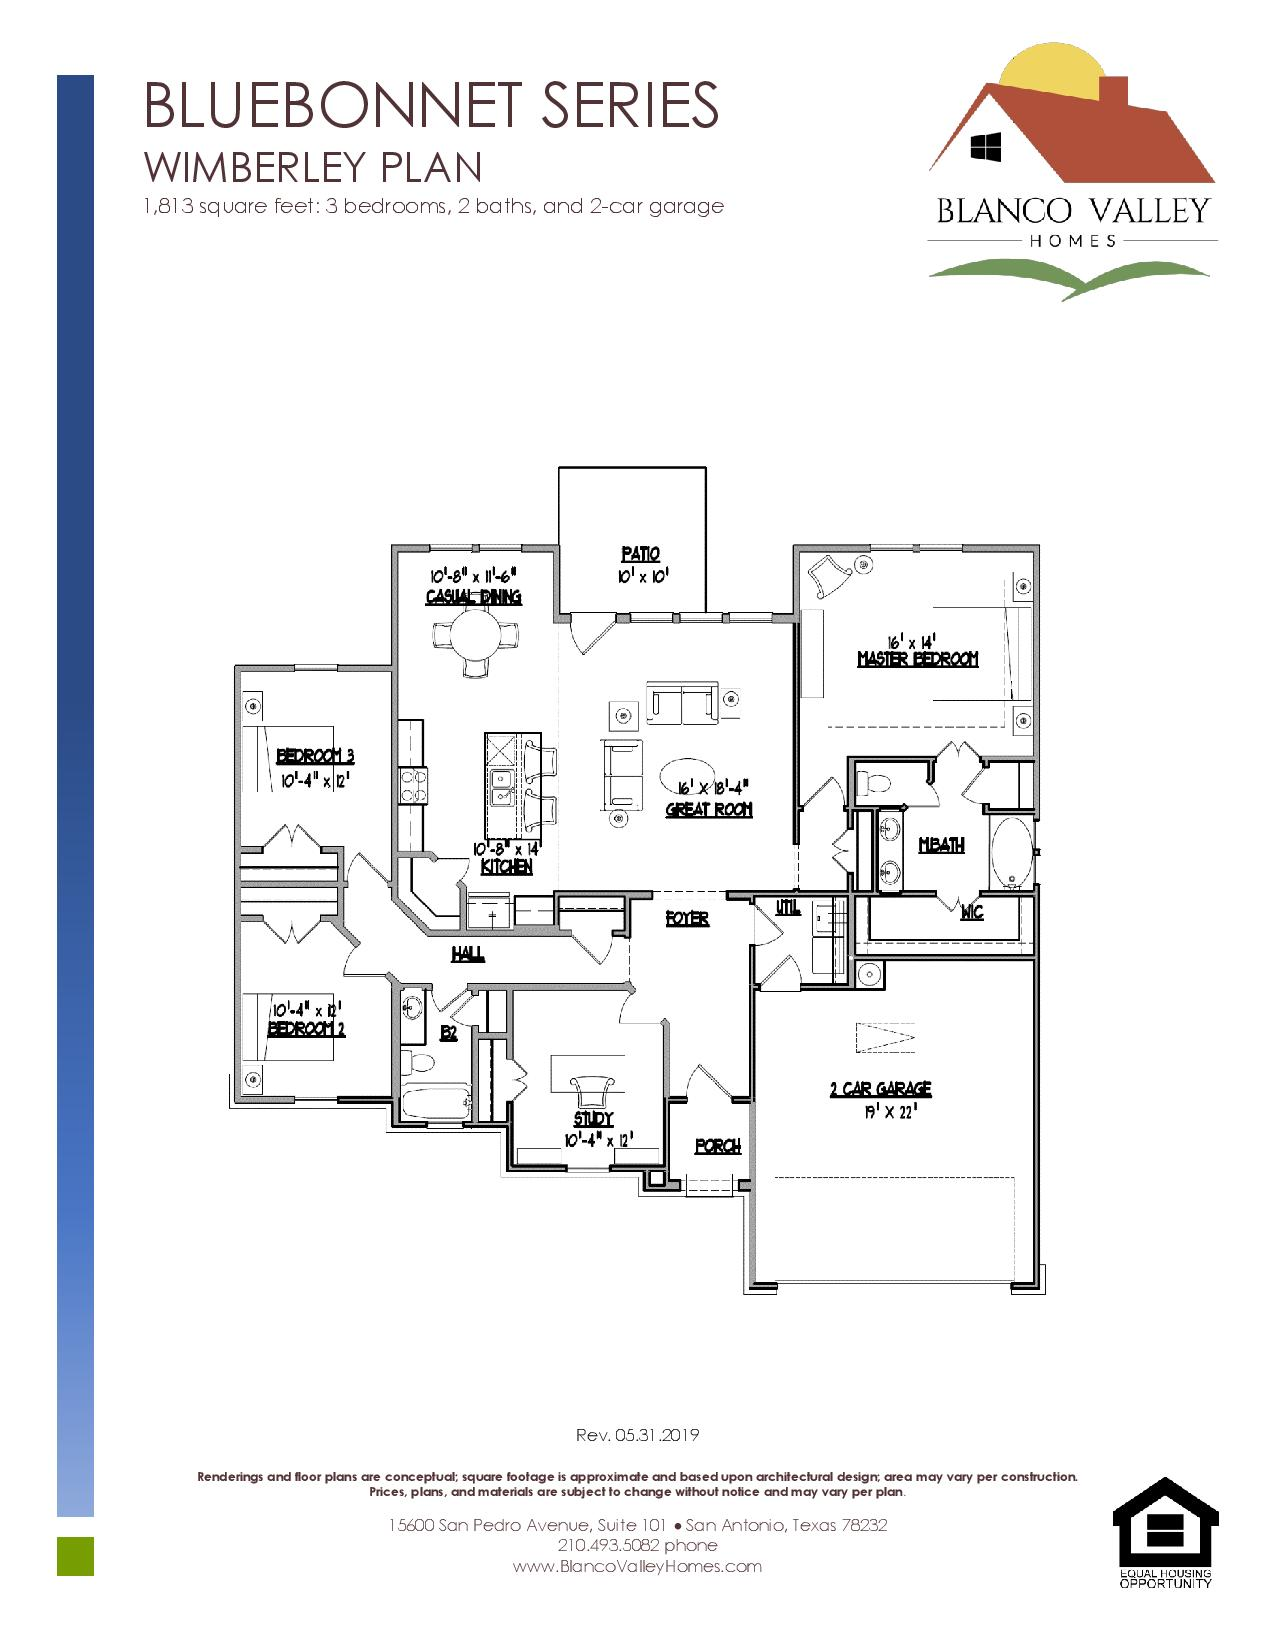 BB Flyer - Wimberley Floor Plan.jpg